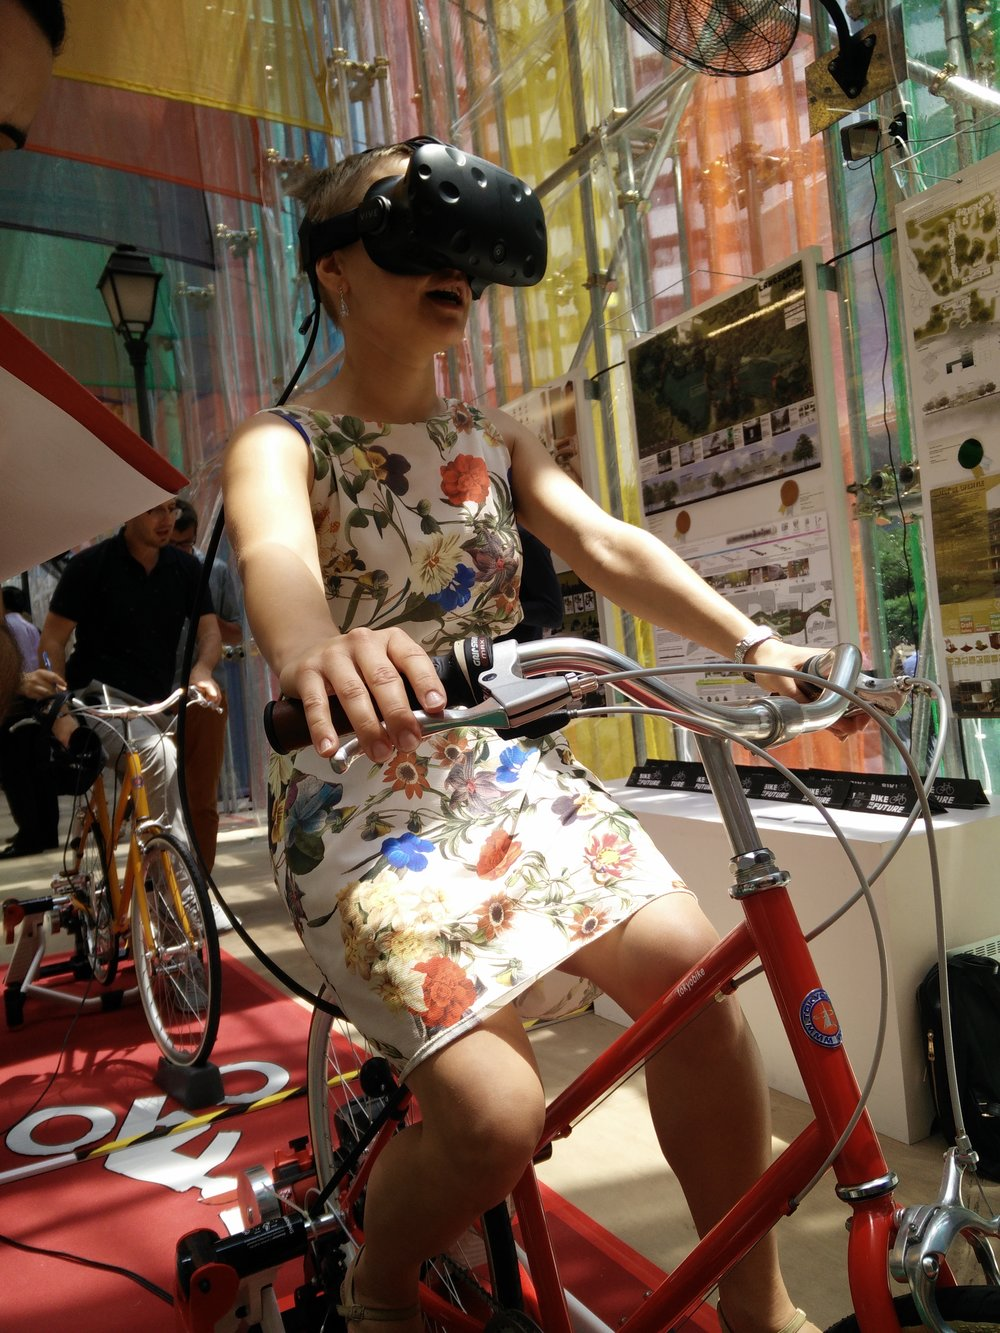 Testing the new and improved Singapore bike lanes in virtual reality.